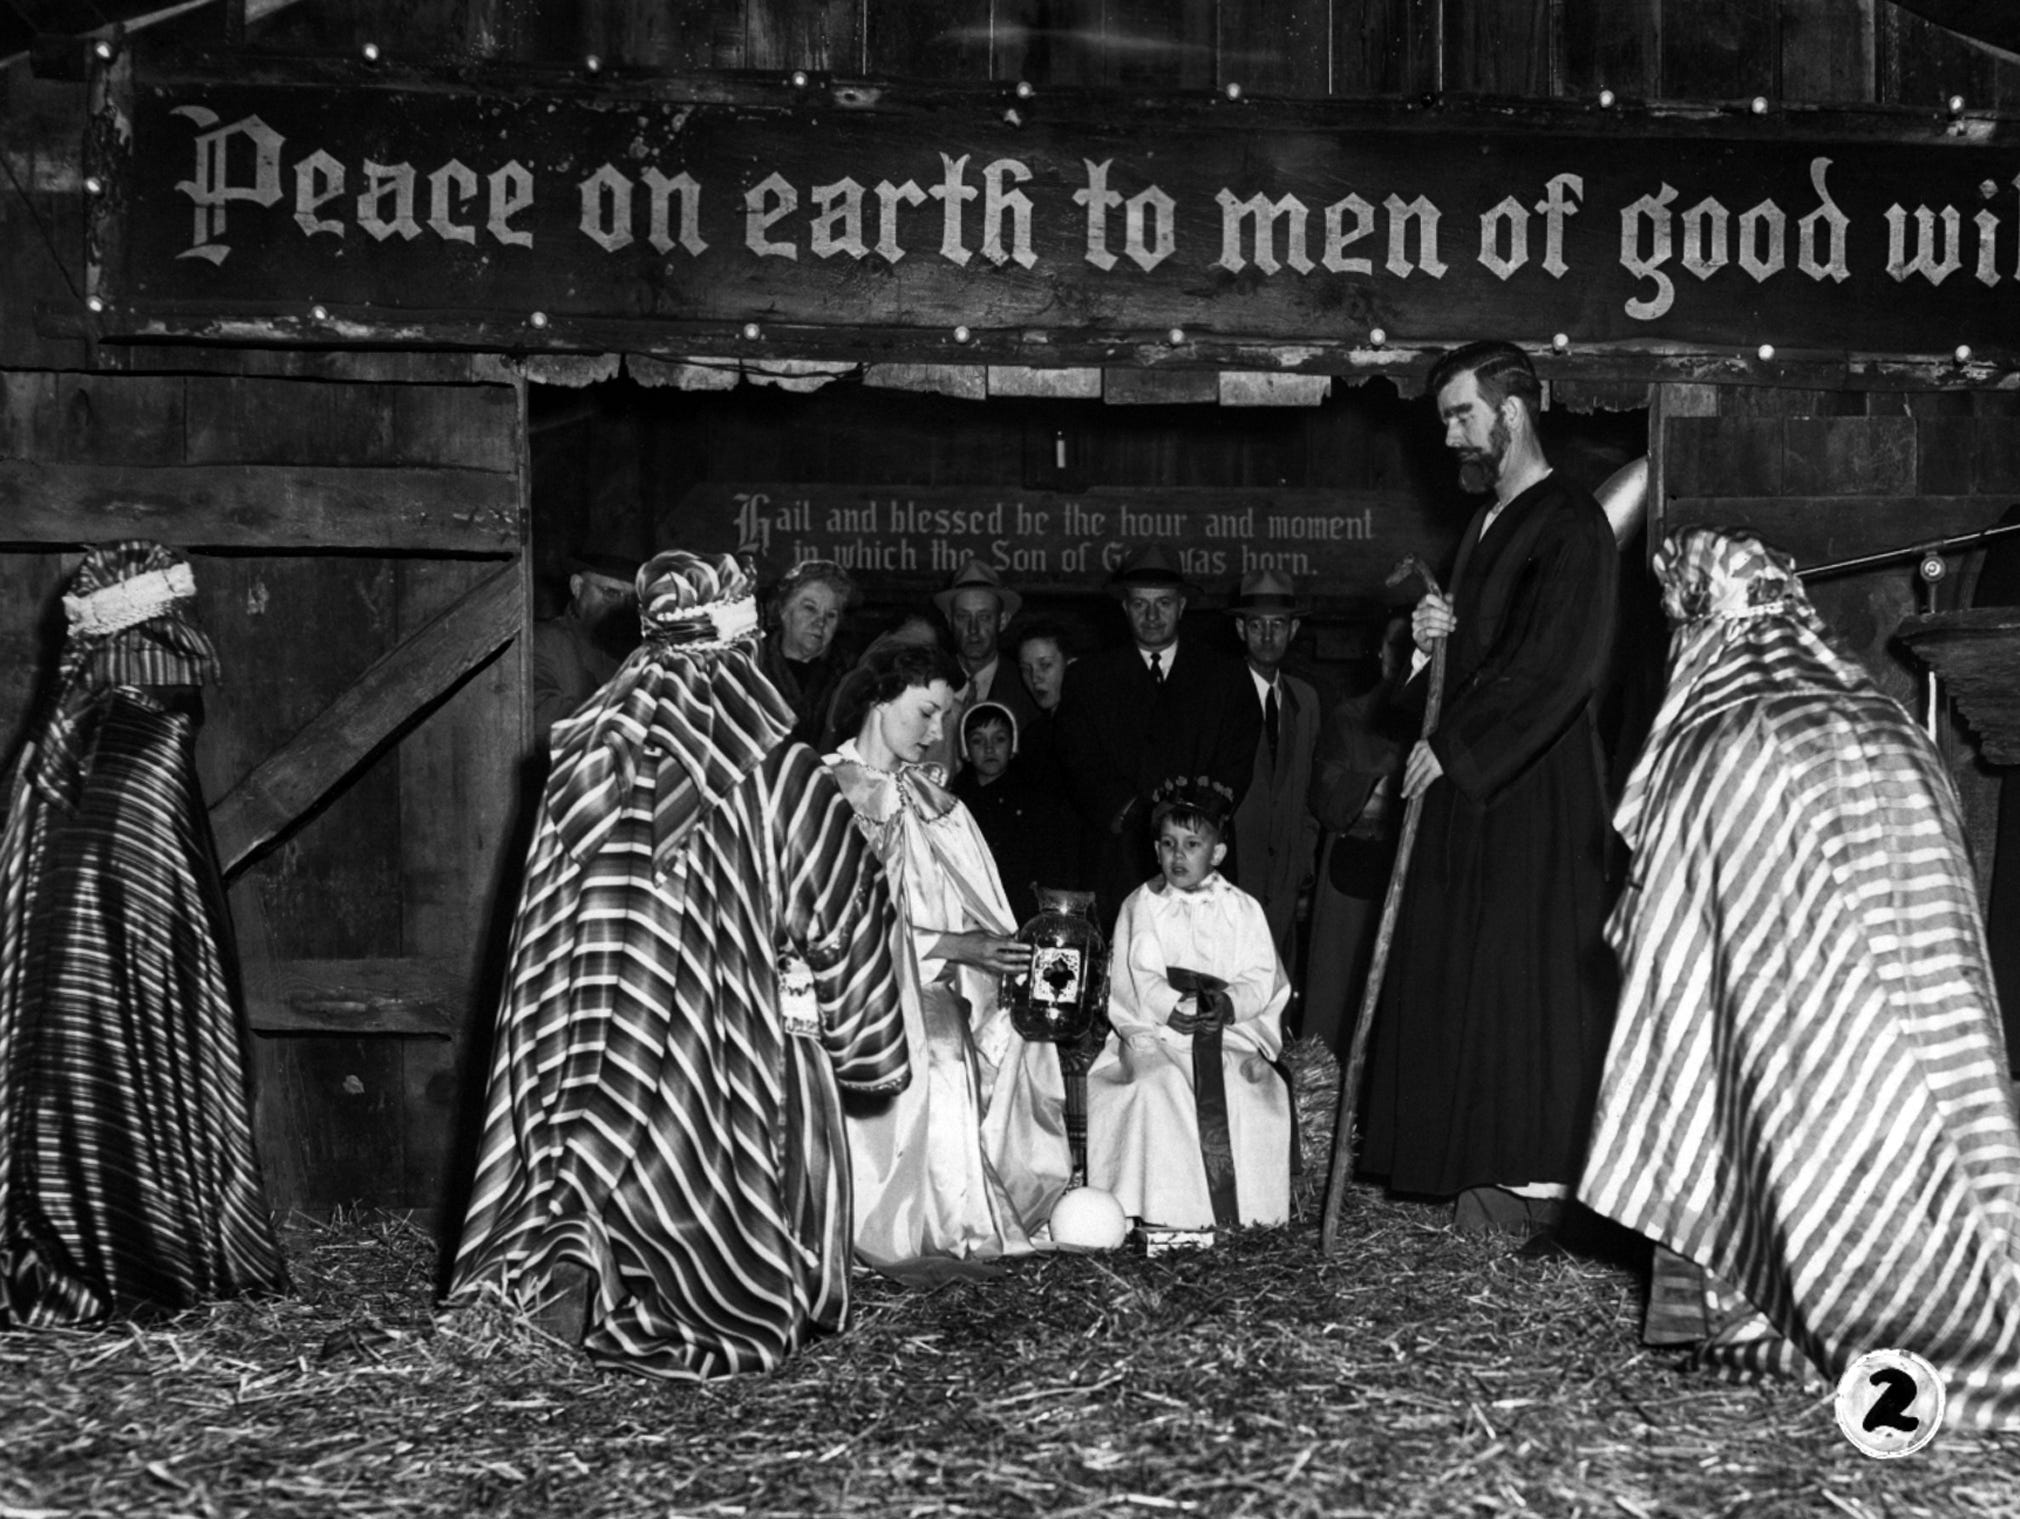 A pageant recalling the visit of the Three Wise Men to the Christ Child was shown at Lytle Park. Playing the parts of Jesus, Mary and Joseph were, respectively, five-year-old Francis Niehaus, Miss Carol Thomas and Henry Niehaus. The three Wise Men were Myron Kilgour, Joseph Diehl and Robert Niehaus. The pageant climaxed the Christ in Christmas celebration sponsored by the Christ in Christmas Committee.